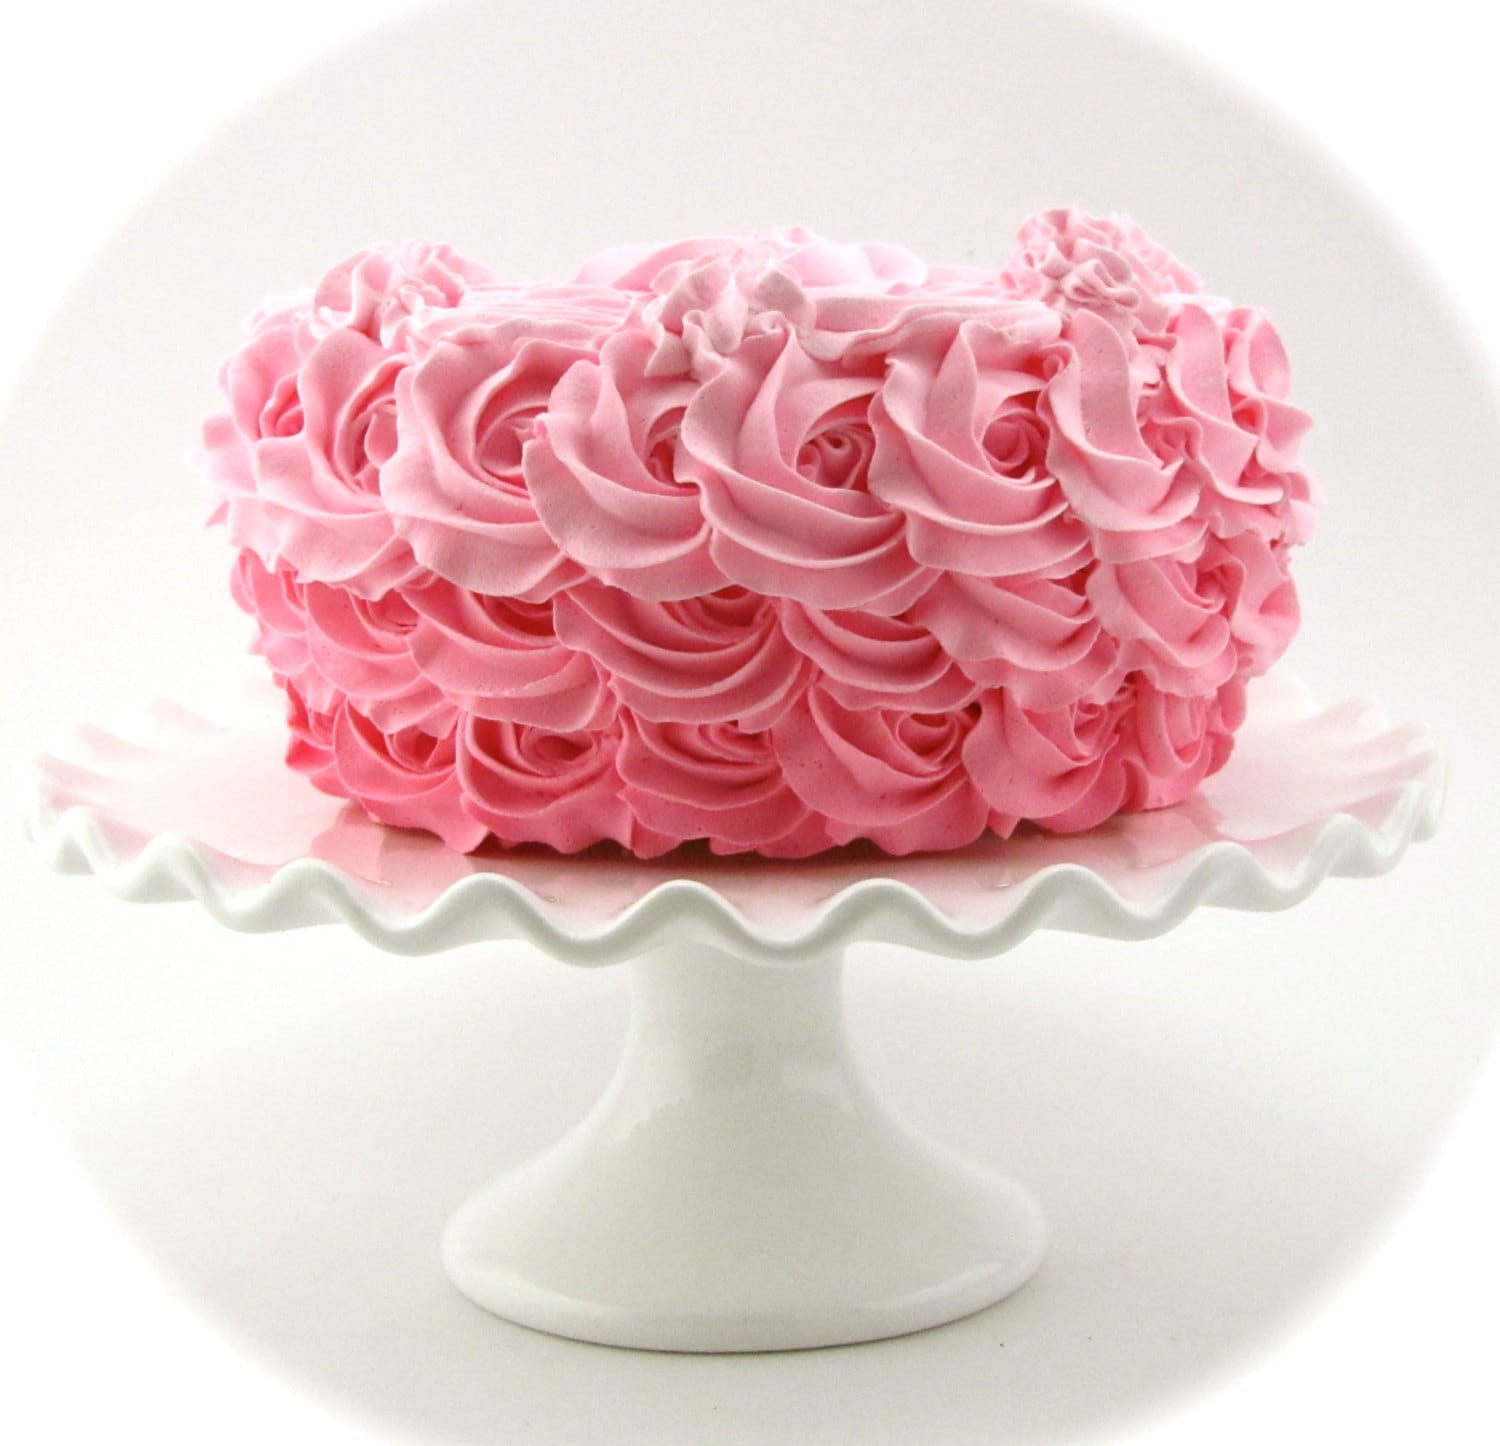 Image result for rose cake recipe